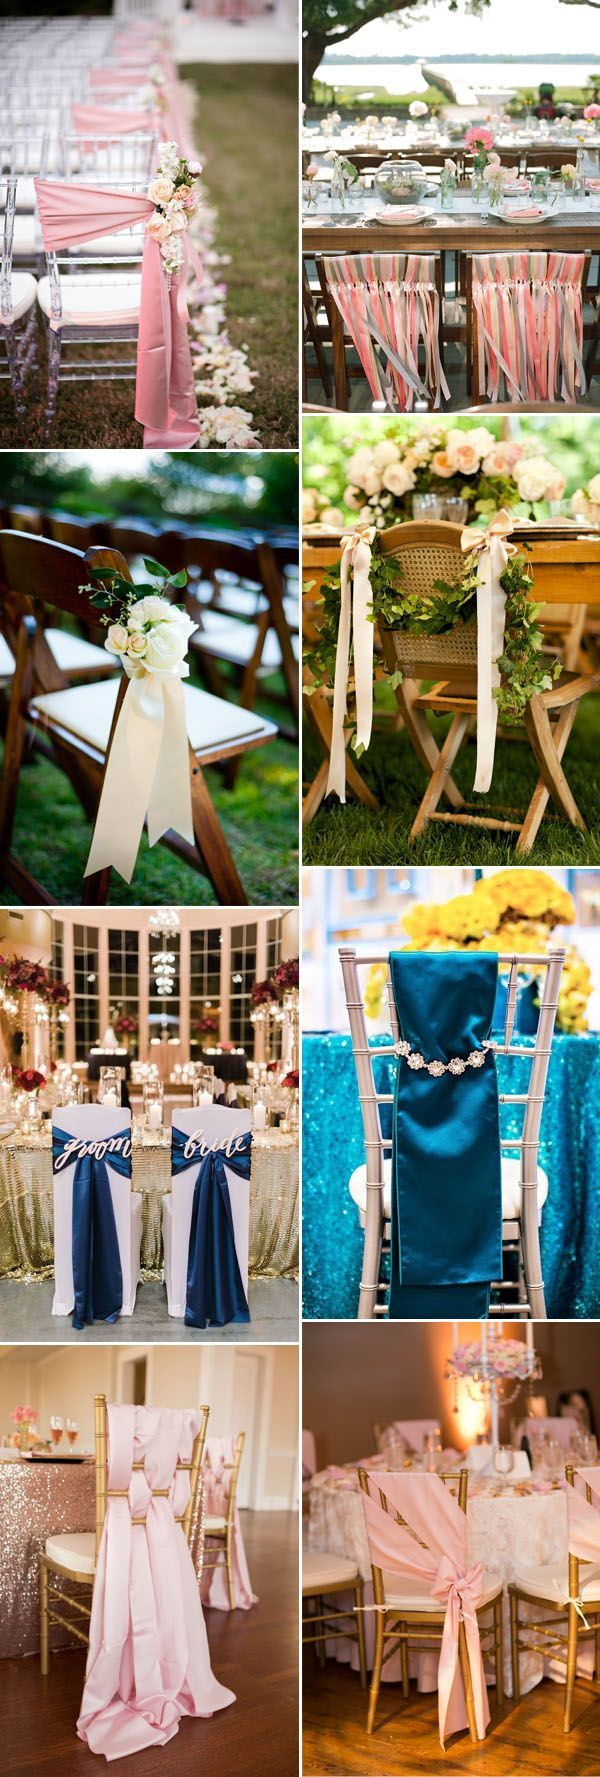 20 creative satin sash wedding chair decor ideas